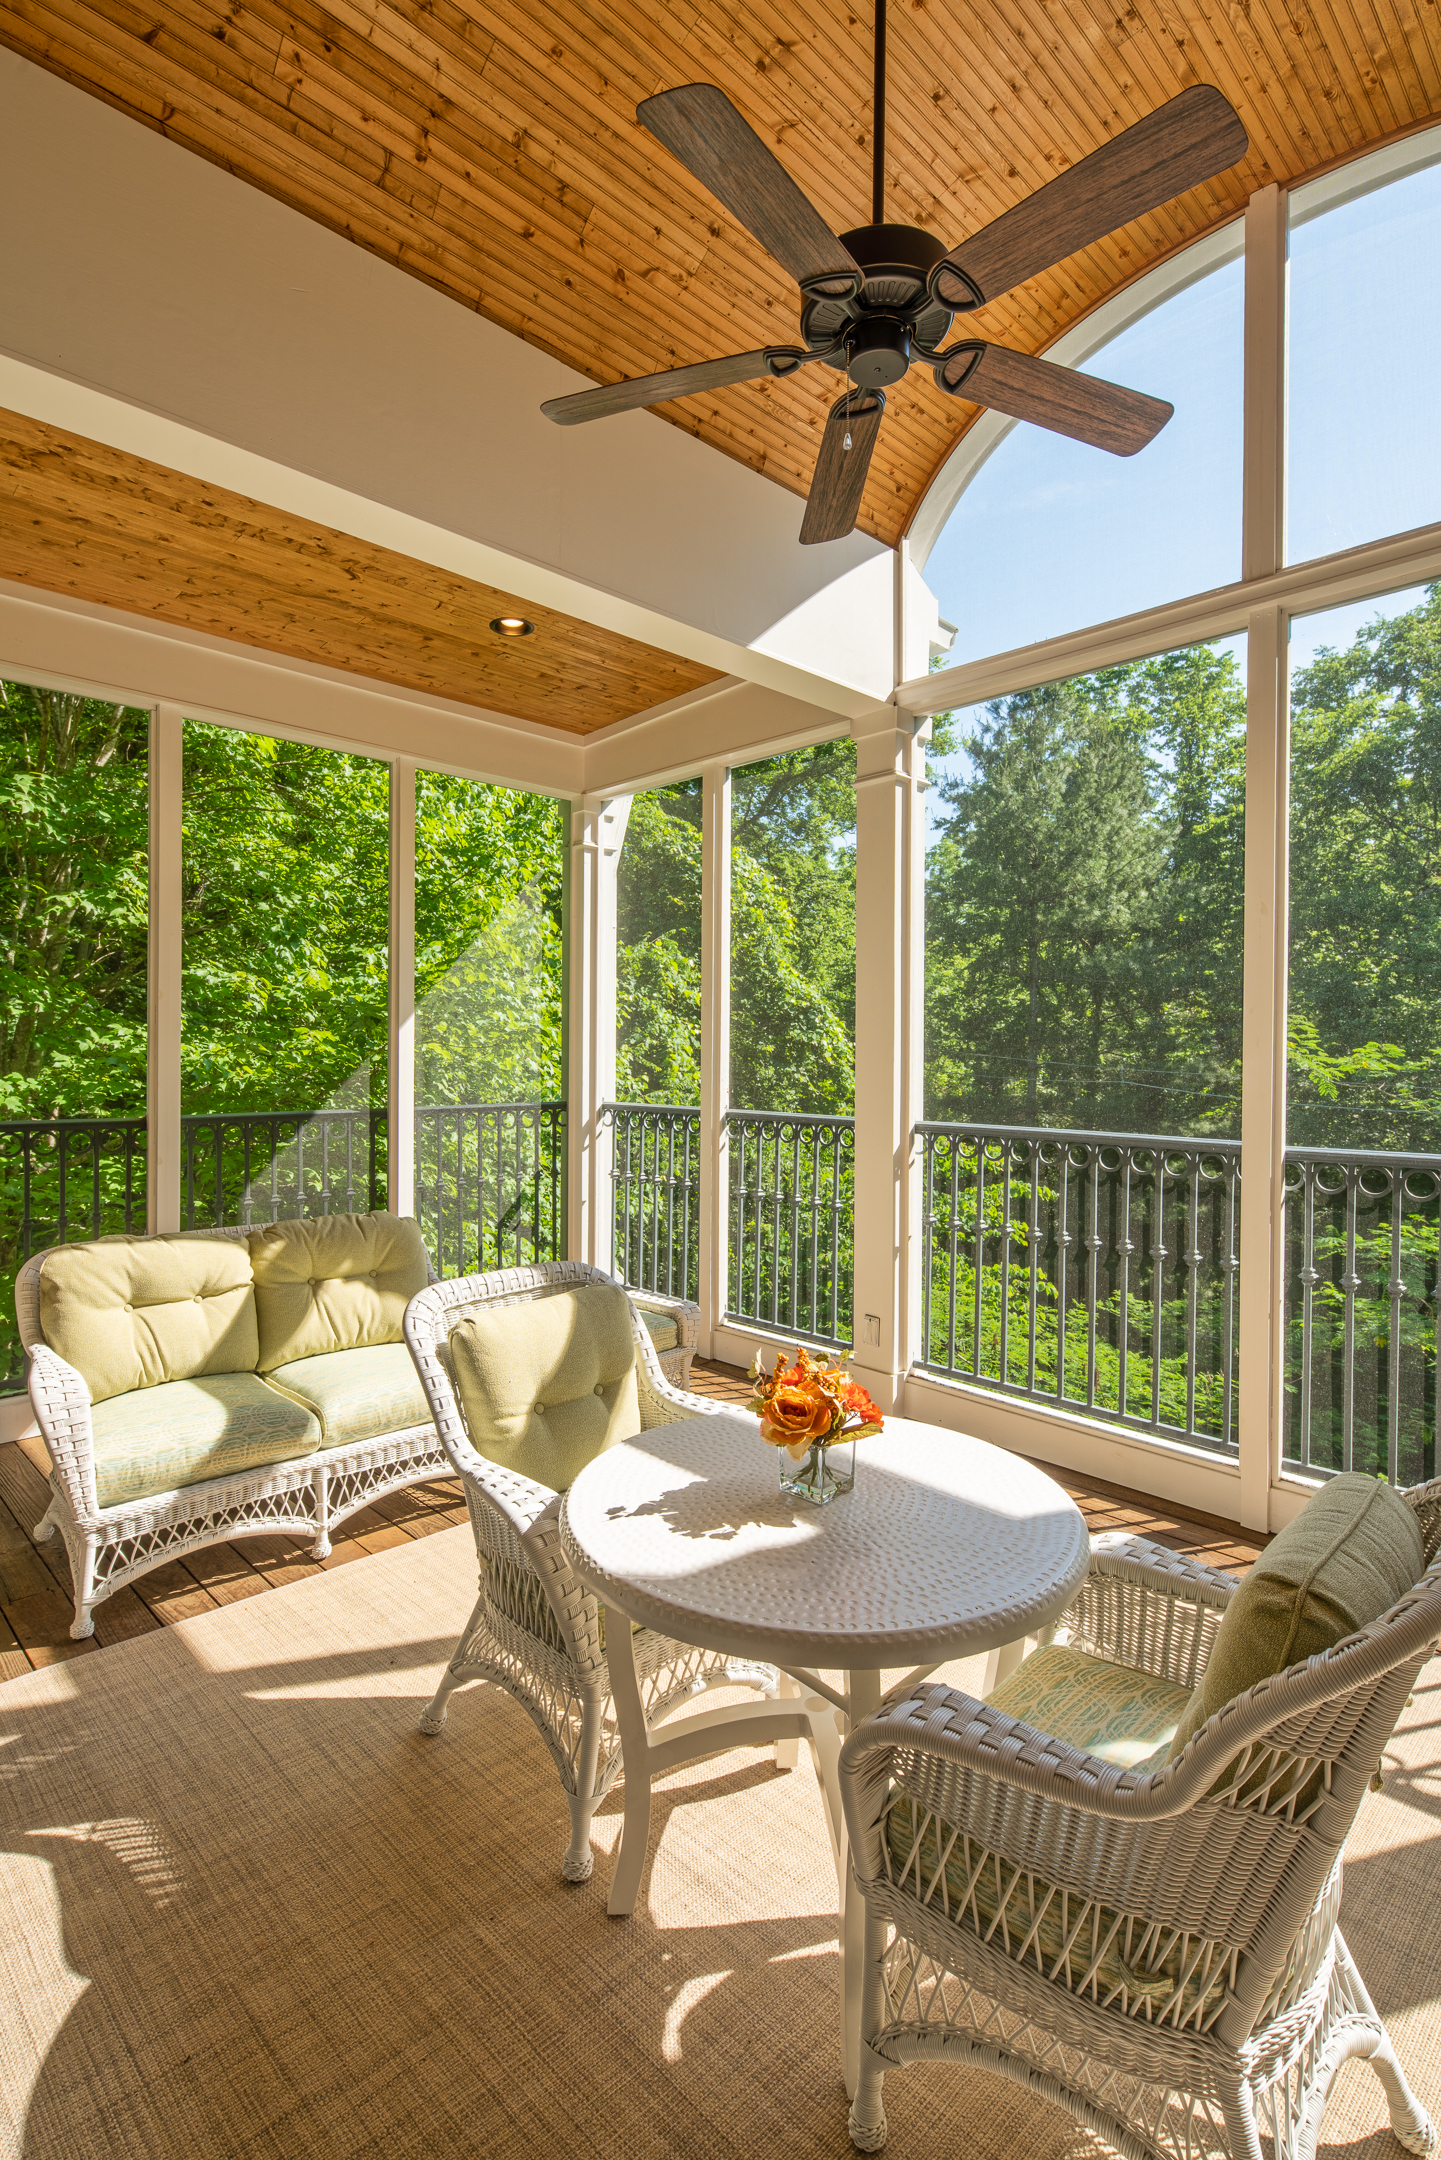 The Porch Company Says Decks Can Be Great But A Screened Porch Does It All Decks Are Great But A Screened Porch Does It Alll Better